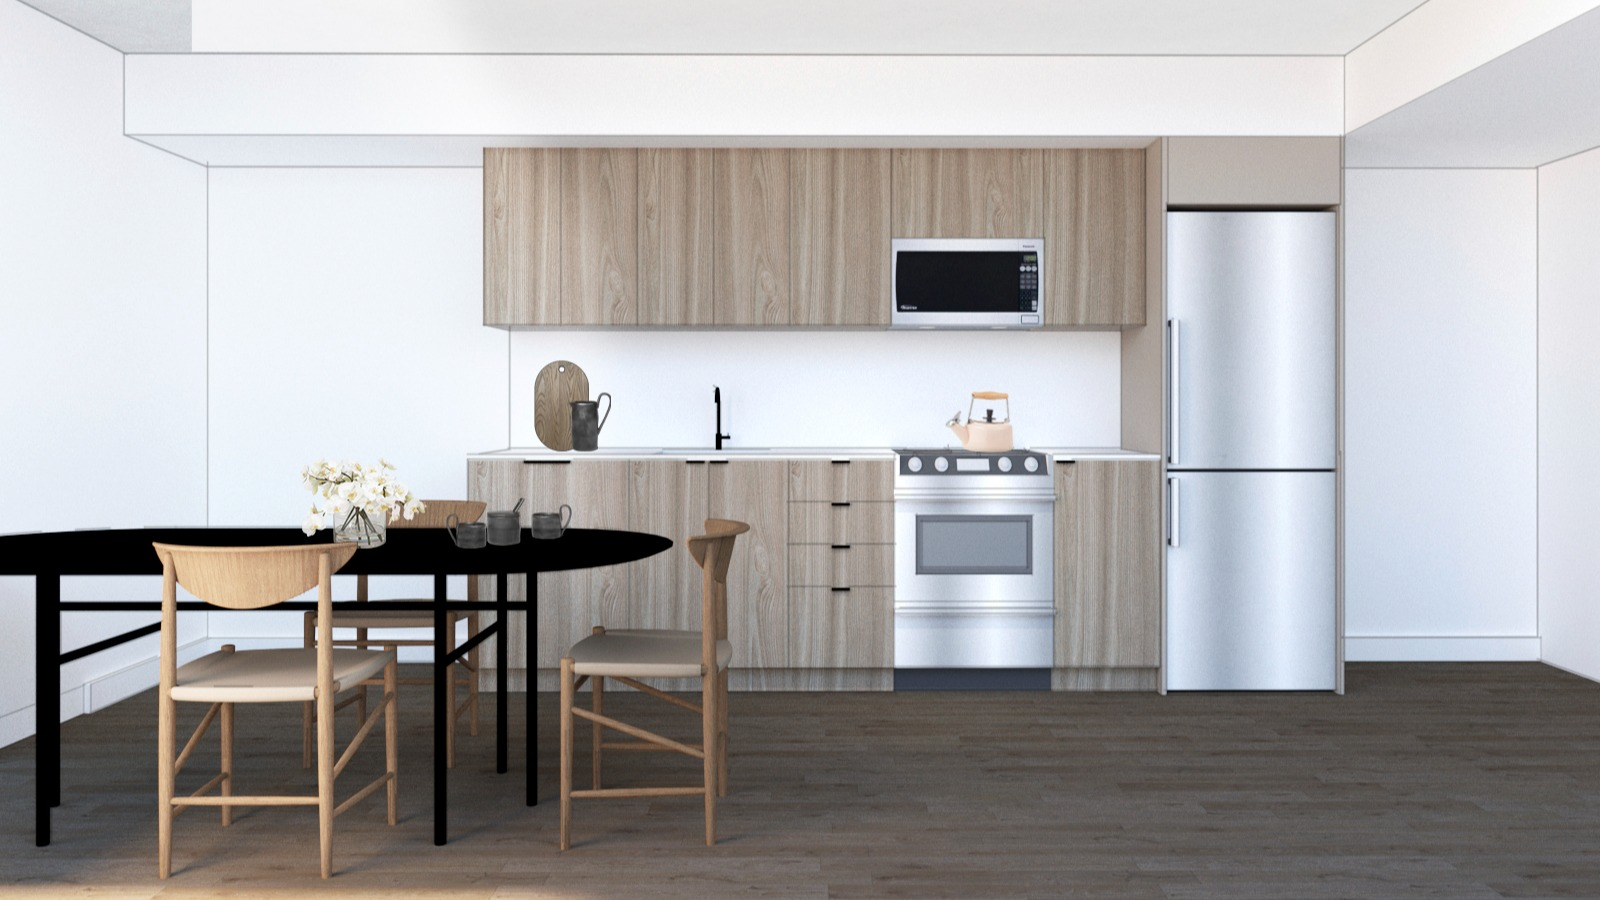 Rendering of kitchen with table and built in cabinetry and appliances